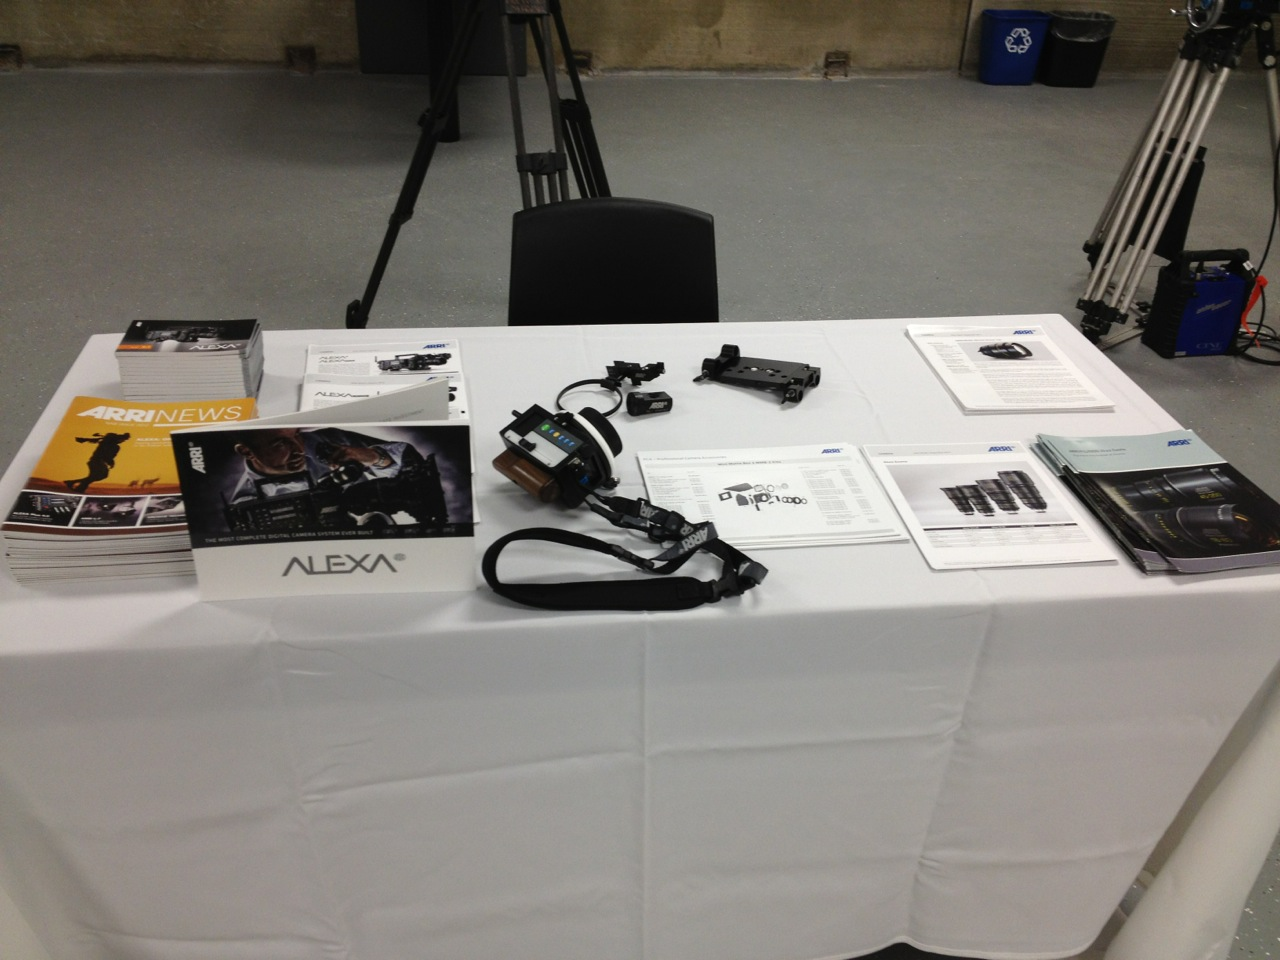 Fletcher Camera Open House in New Orleans